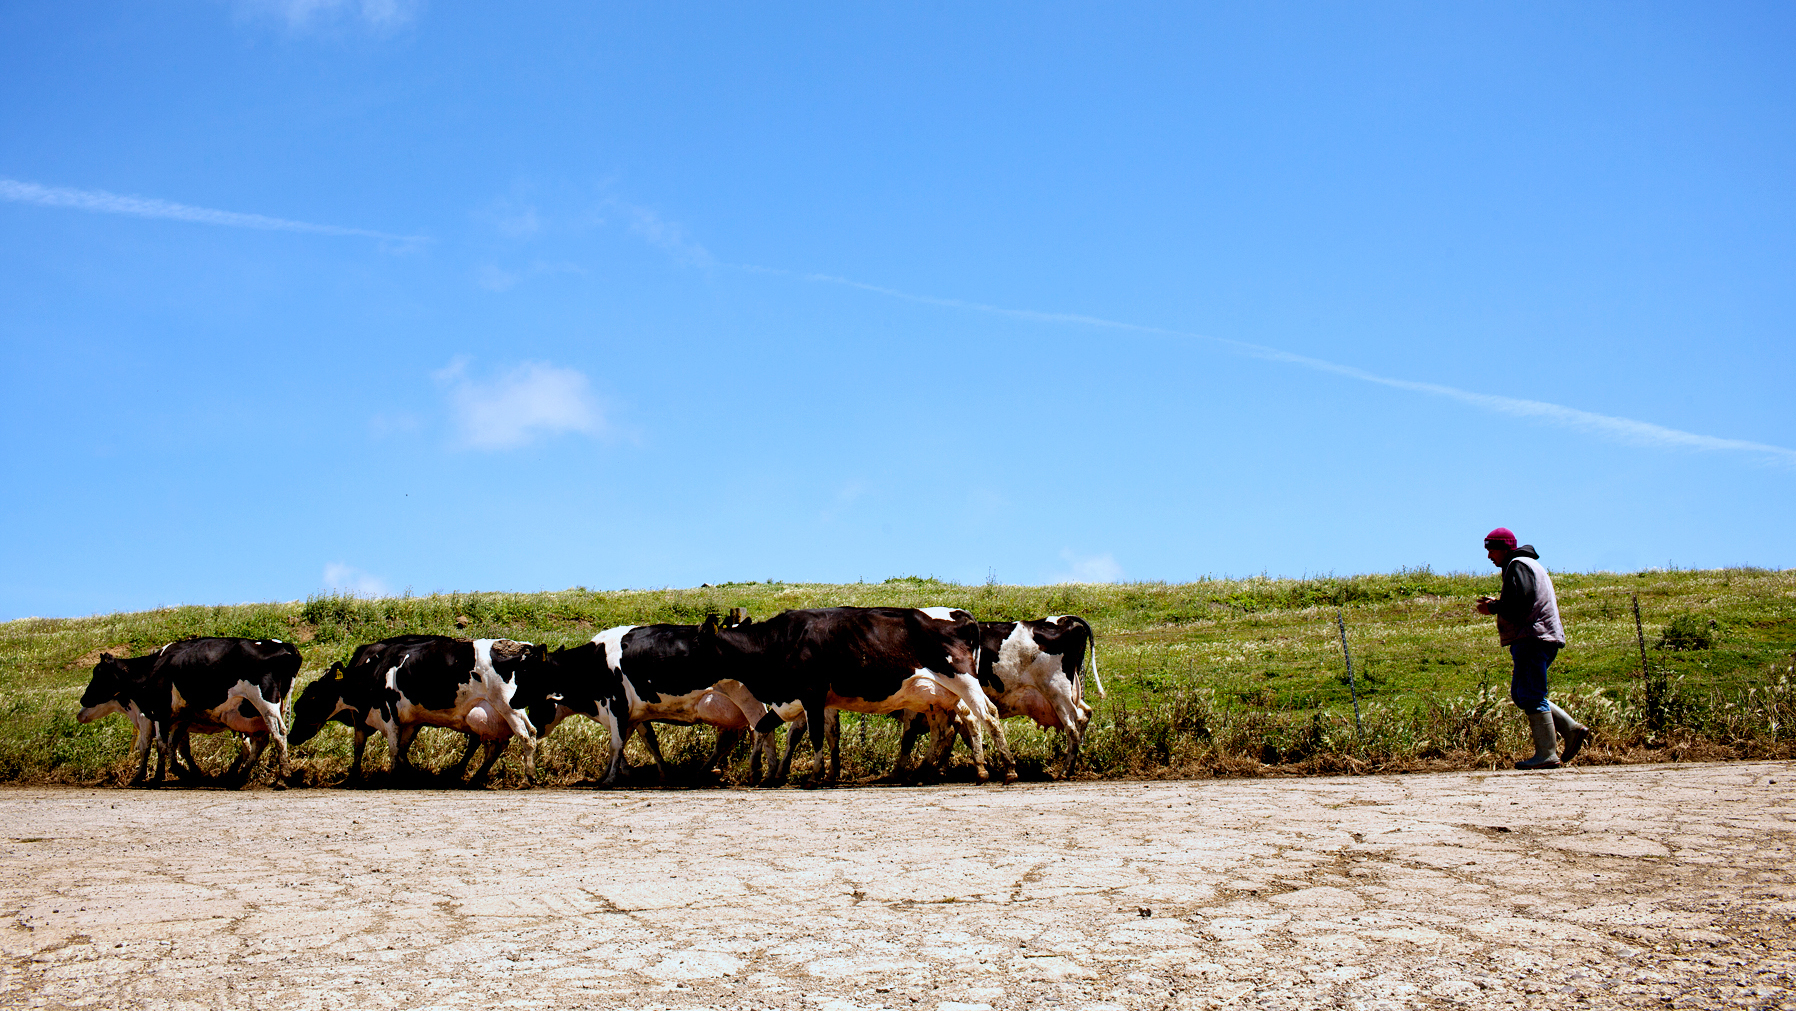 Jose Gonzalez monitors the cows at Bivalve Dairy as they walk to be milked at the farm near Point Reyes Station, Calif. Photo: Tim Hussin for NPR